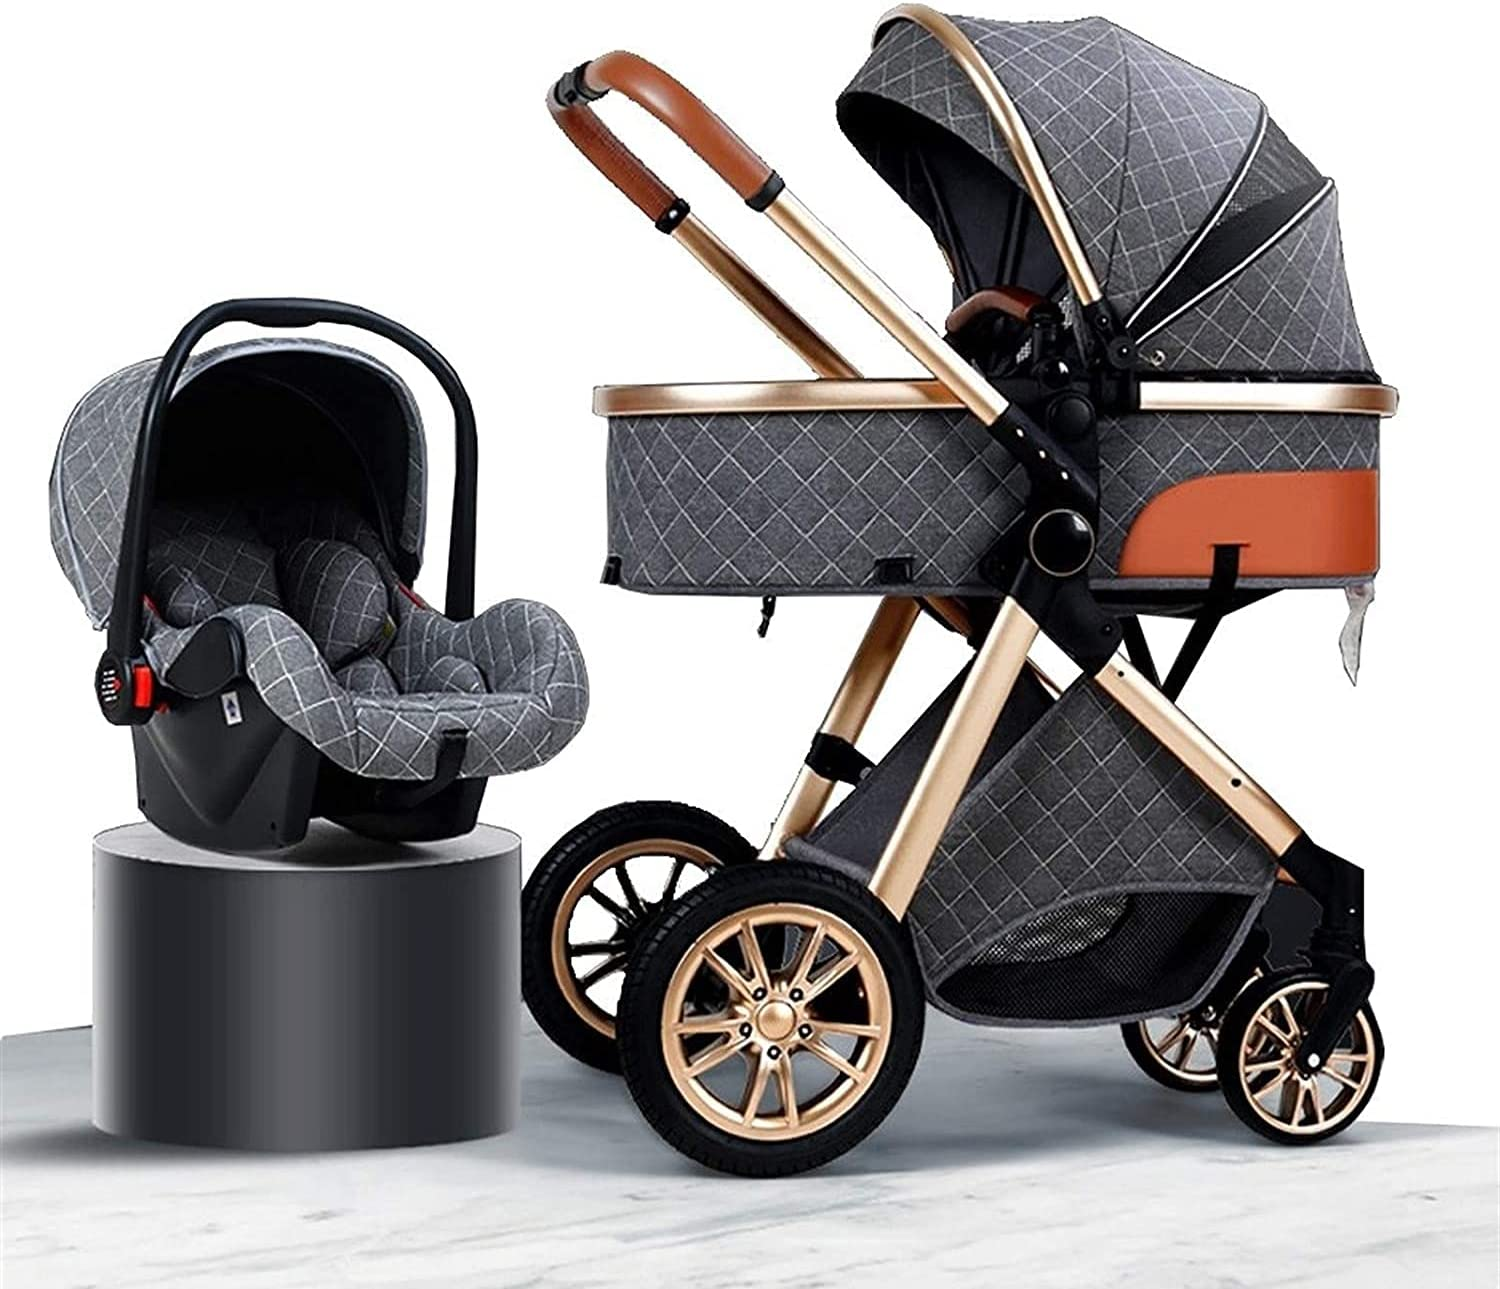 JAKWBR Luxury 3 in 1 Baby Pram Ranking TOP3 Limited time for free shipping F System Stroller Travel Carriage